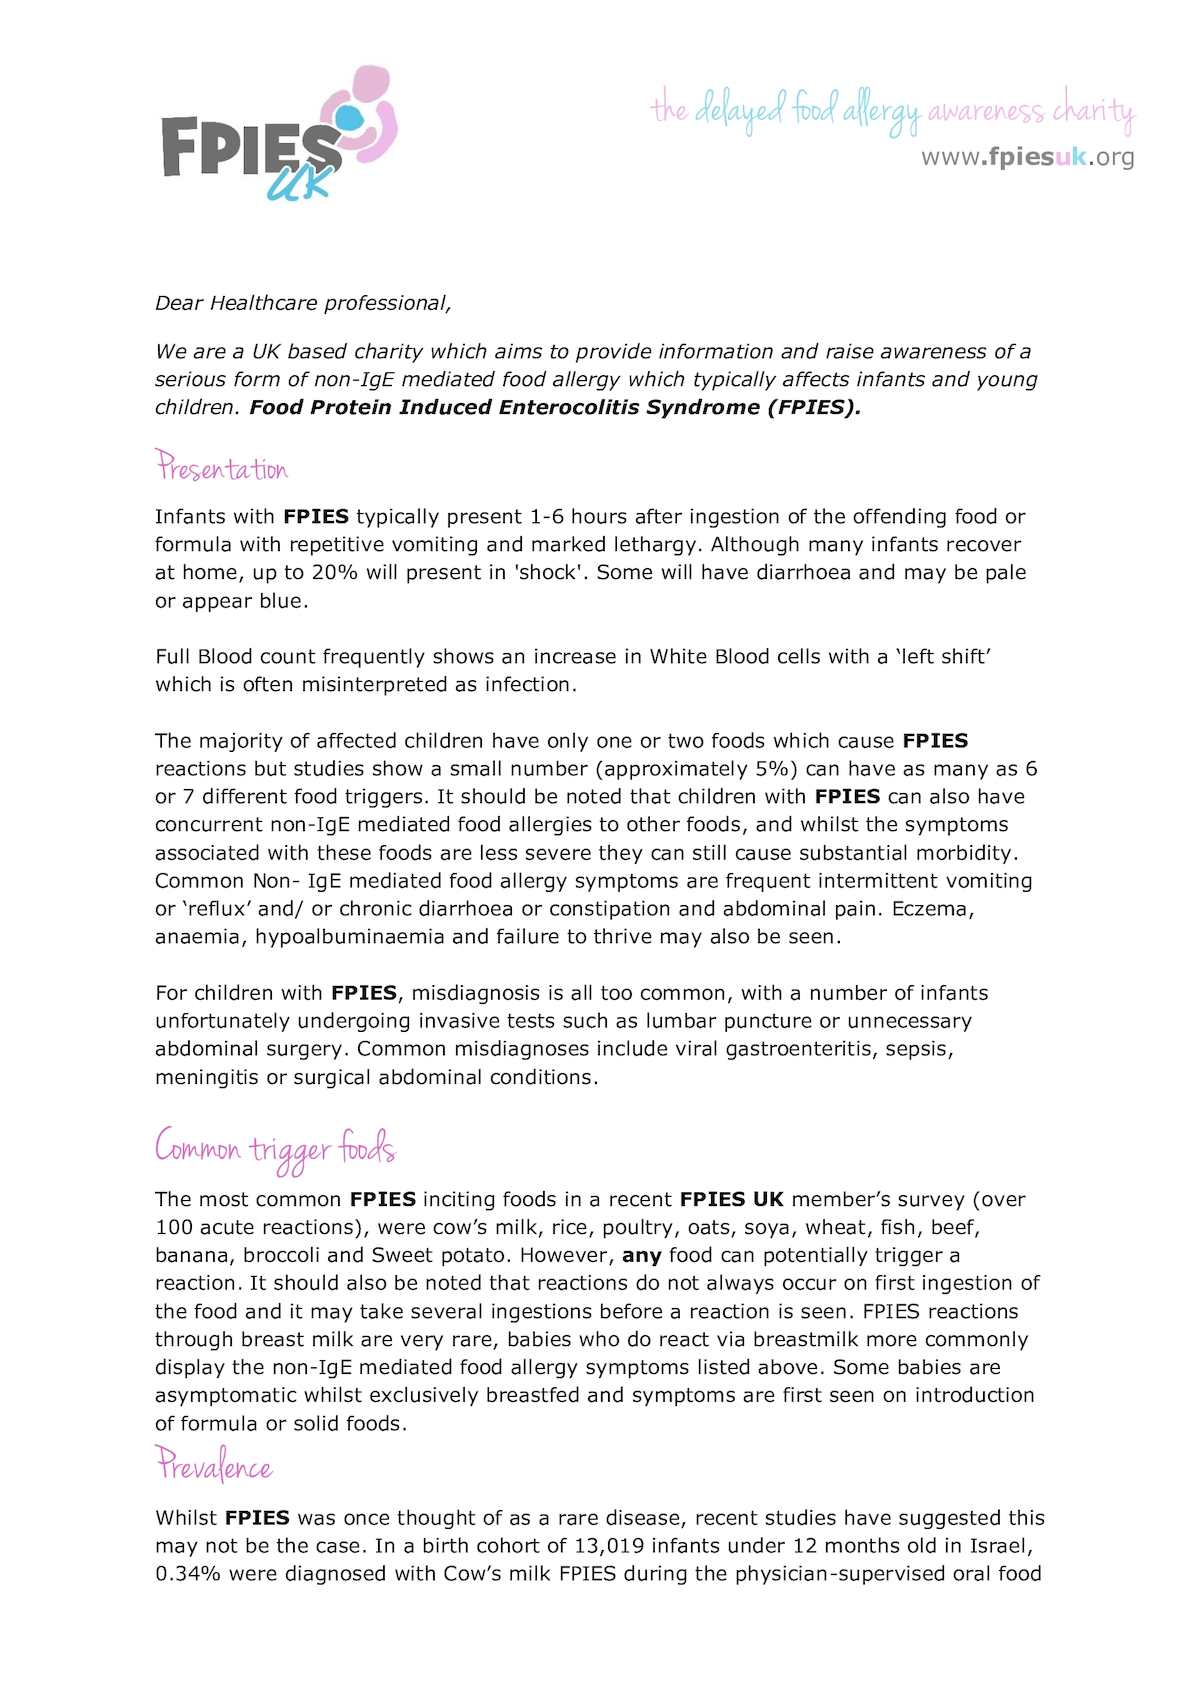 Calameo Letter For Healthcare Professionals